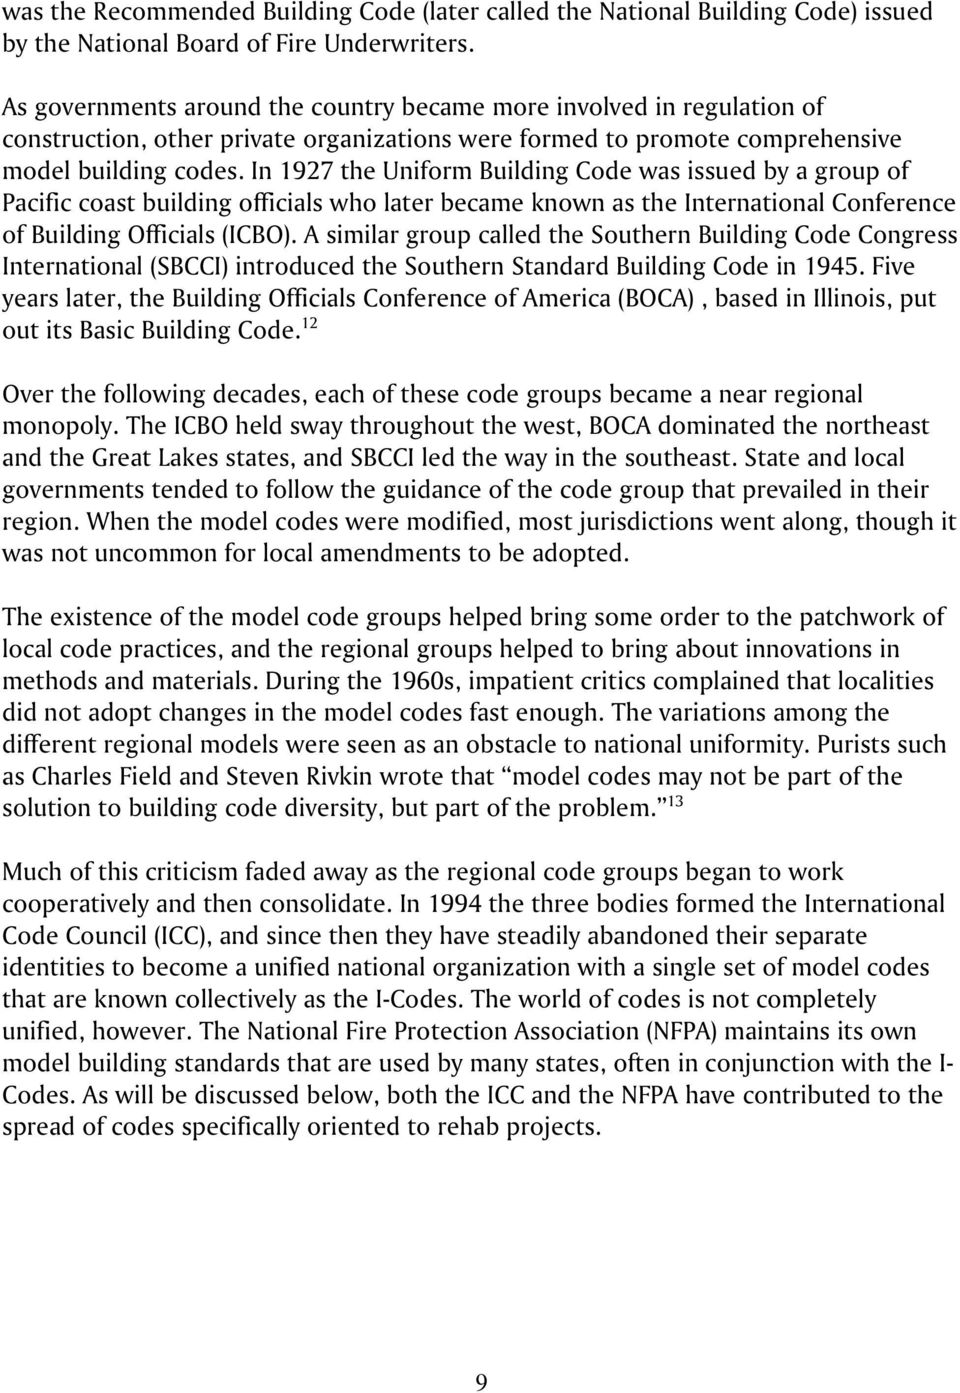 In 1927 the Uniform Building Code was issued by a group of Pacific coast building officials who later became known as the International Conference of Building Officials (ICBO).